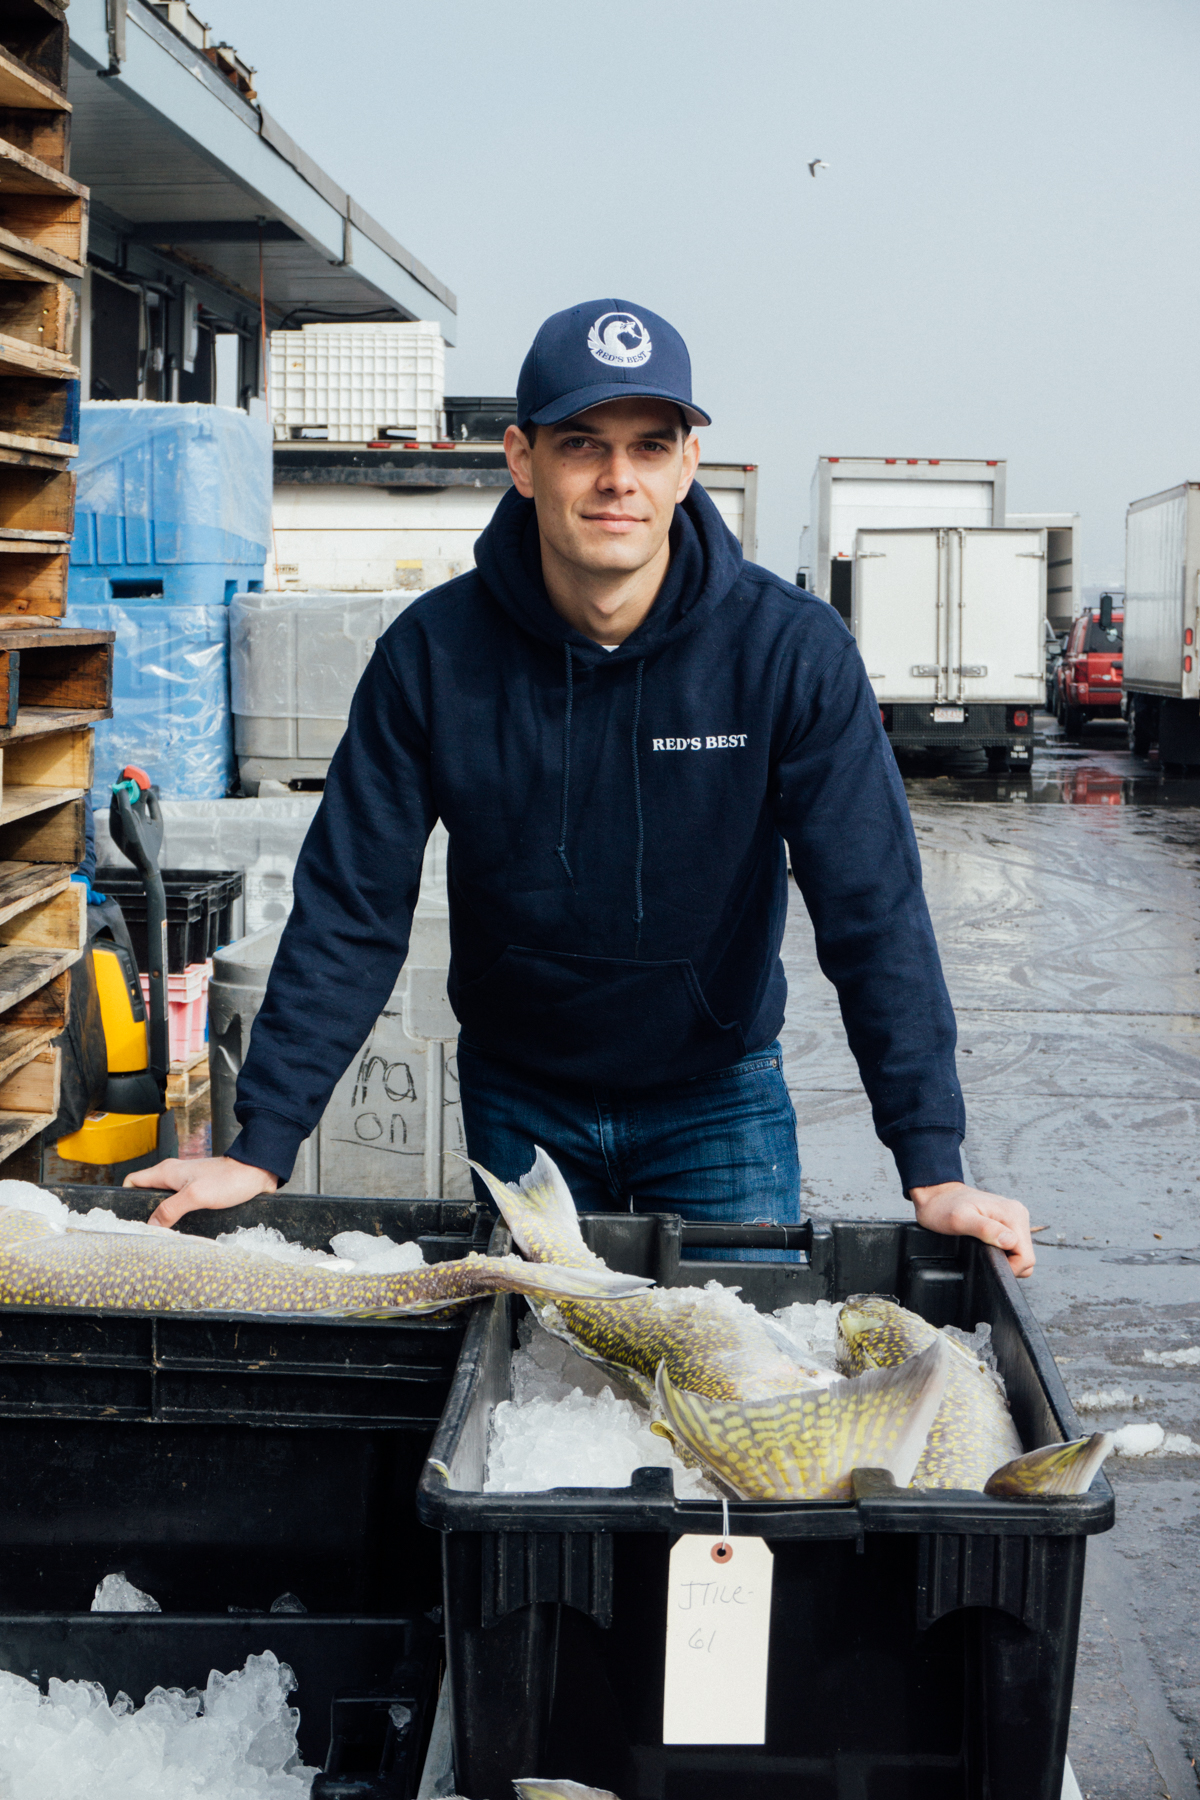 Retail Operations Manager, Ryan Rasys, oversees Red's Best retail location at Boston Public Market.